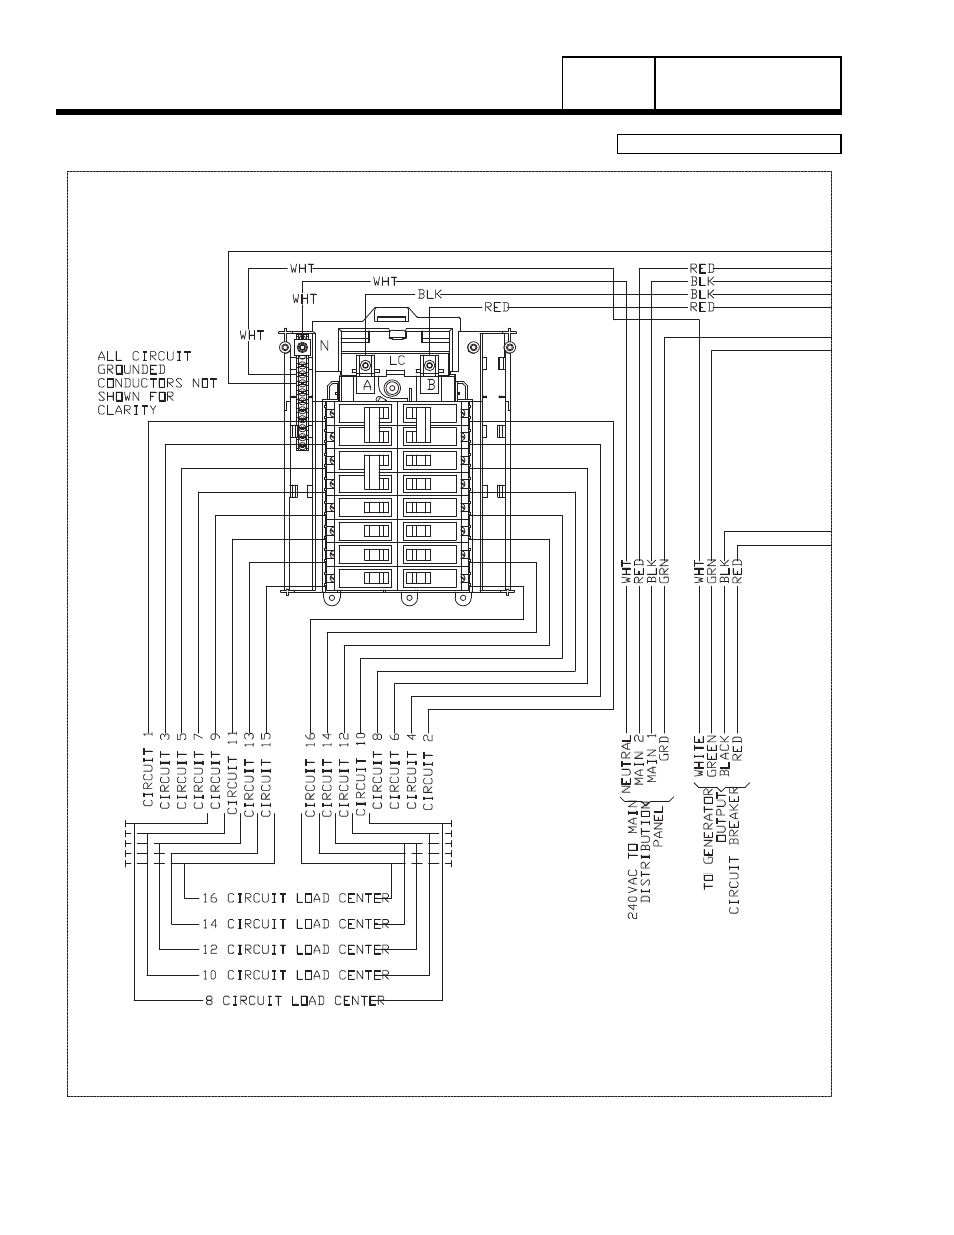 Group g, Part 7, Wiring diagram, home standby | Generac Power Systems 8